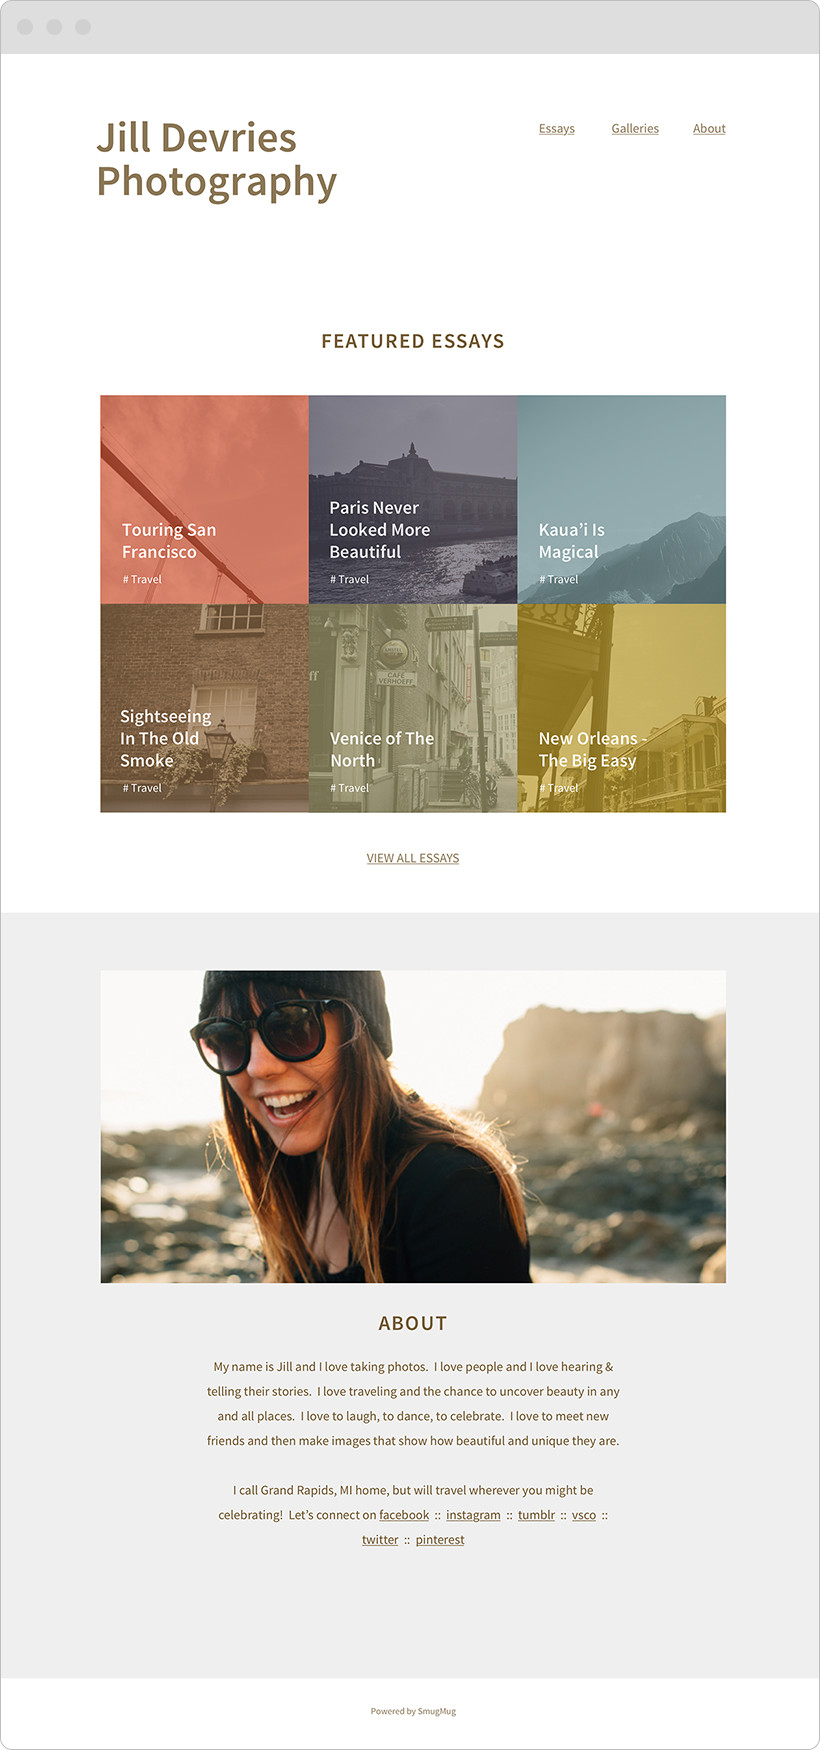 A card-stack metaphor brought a dynamic spotlight to the homepage. Photo and message regions were modular for easy content swapping.